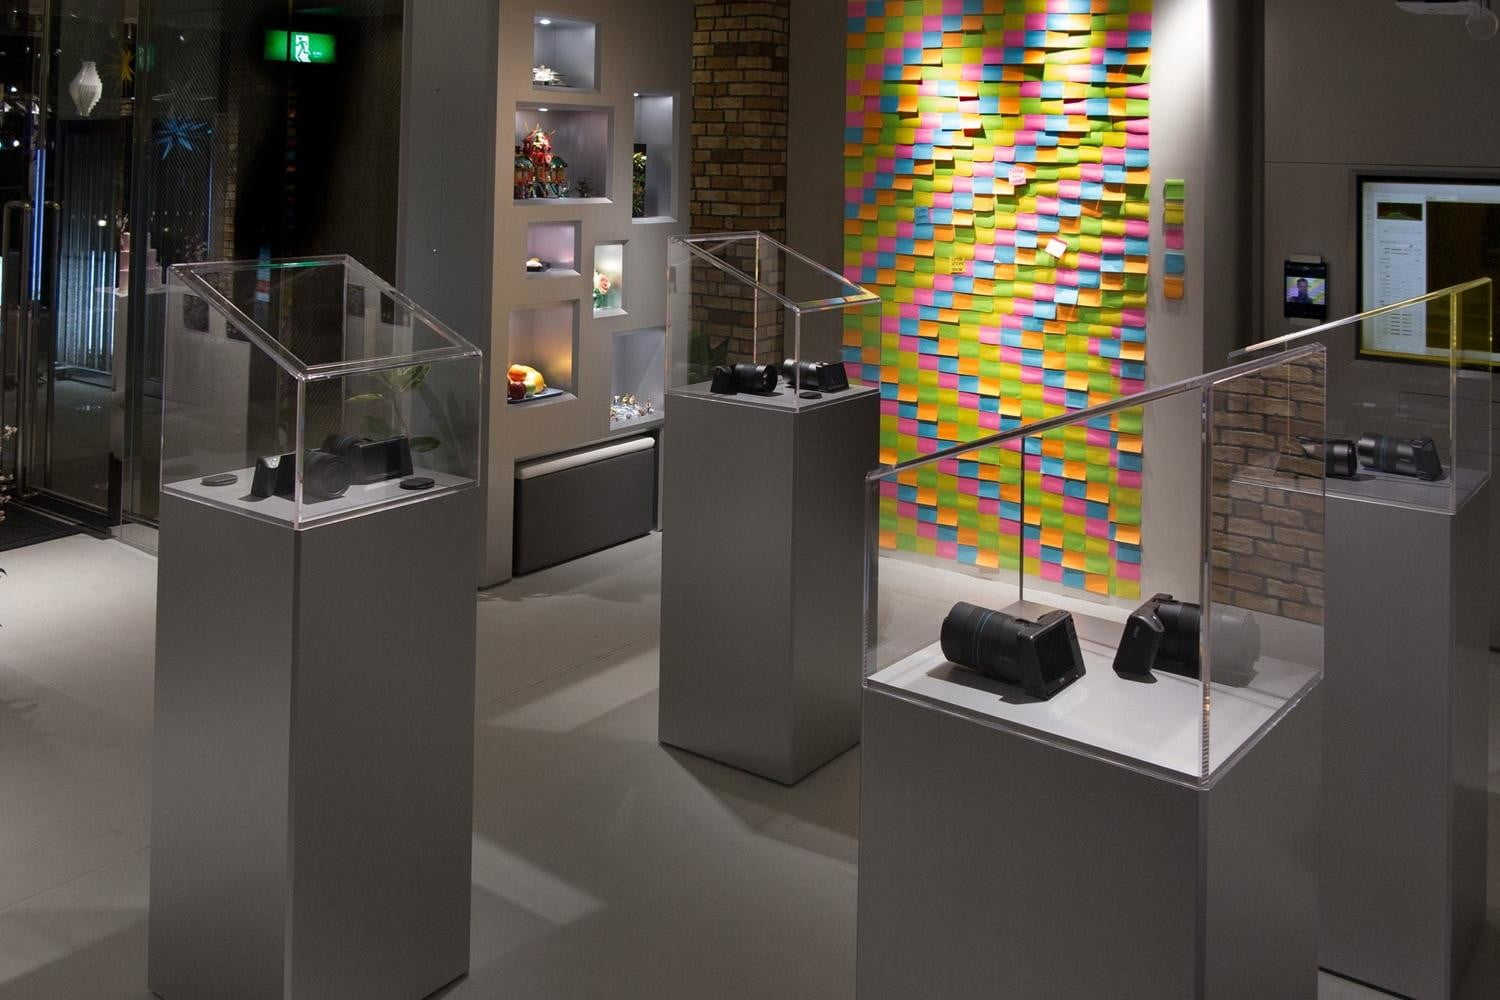 lytro opens tokyo storefront as light field experience center store 4